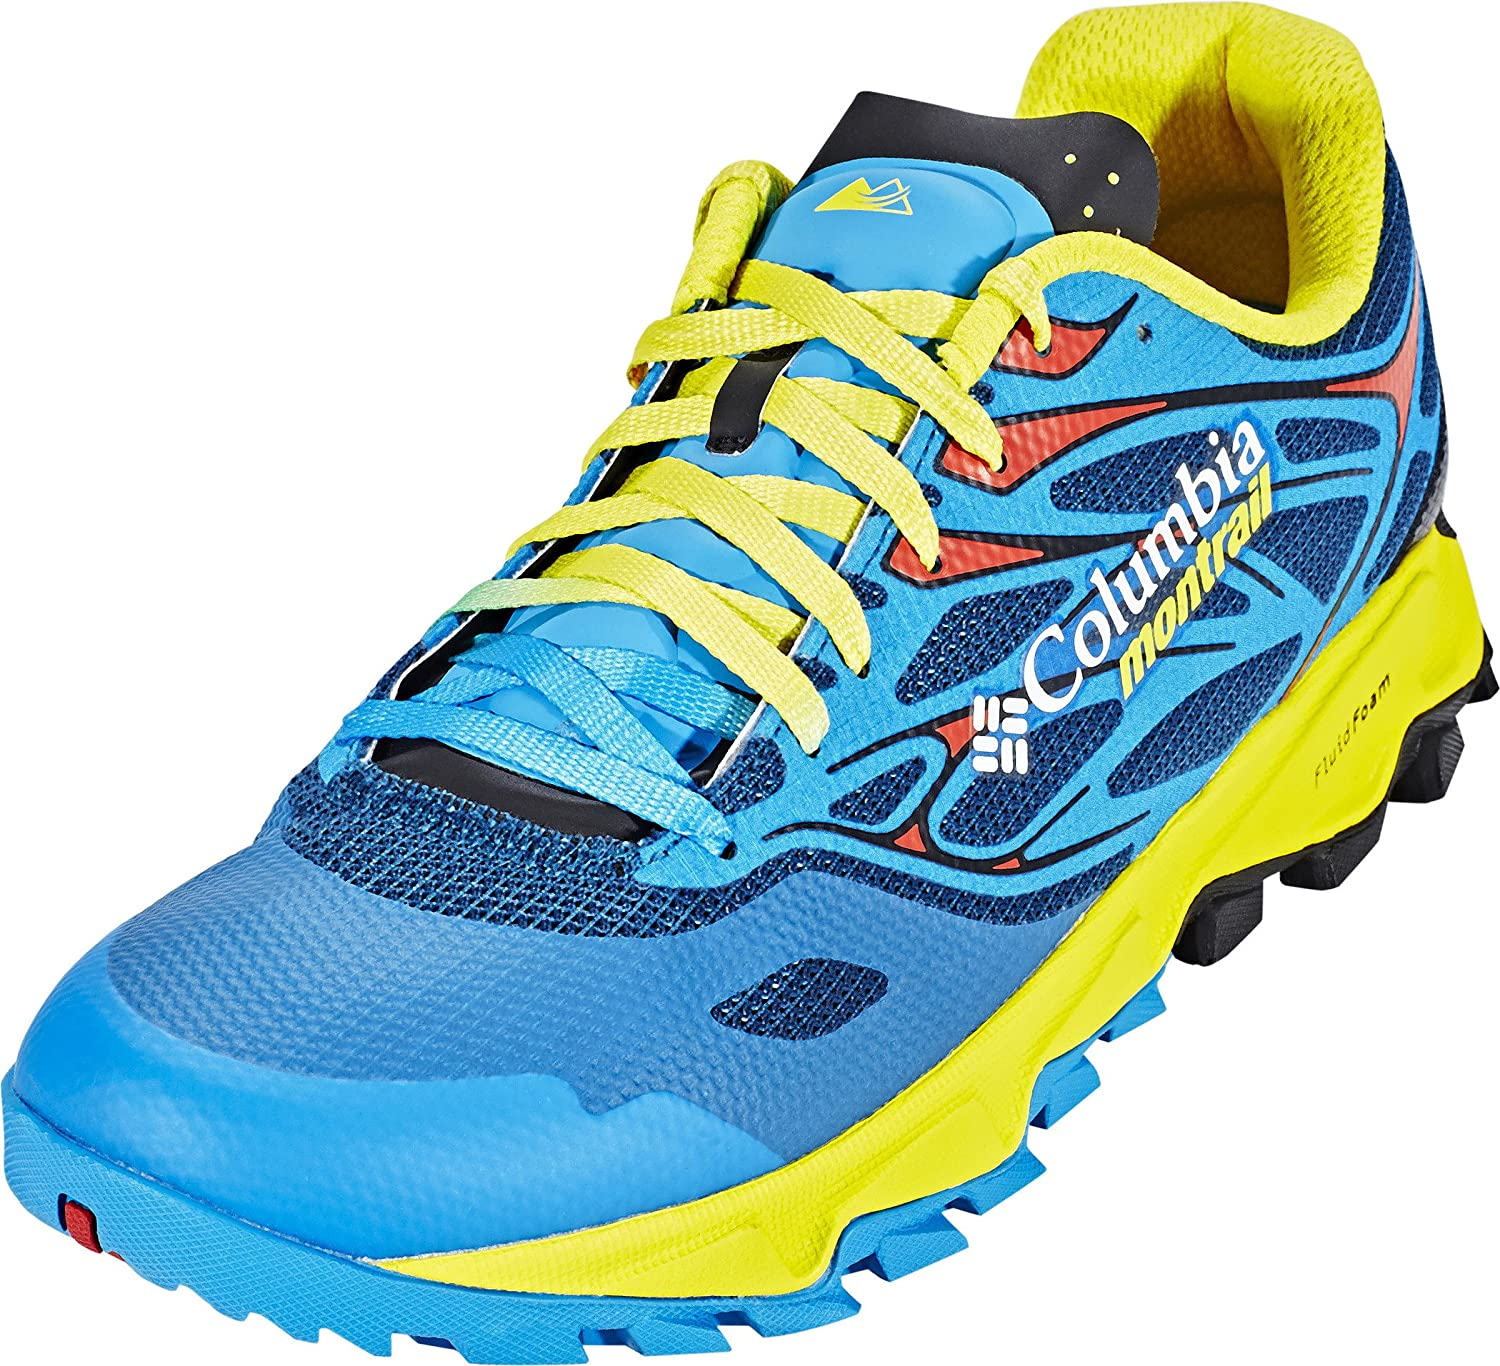 Columbia Trans Alps F.K.T. II shoes Yellow bluee 2017